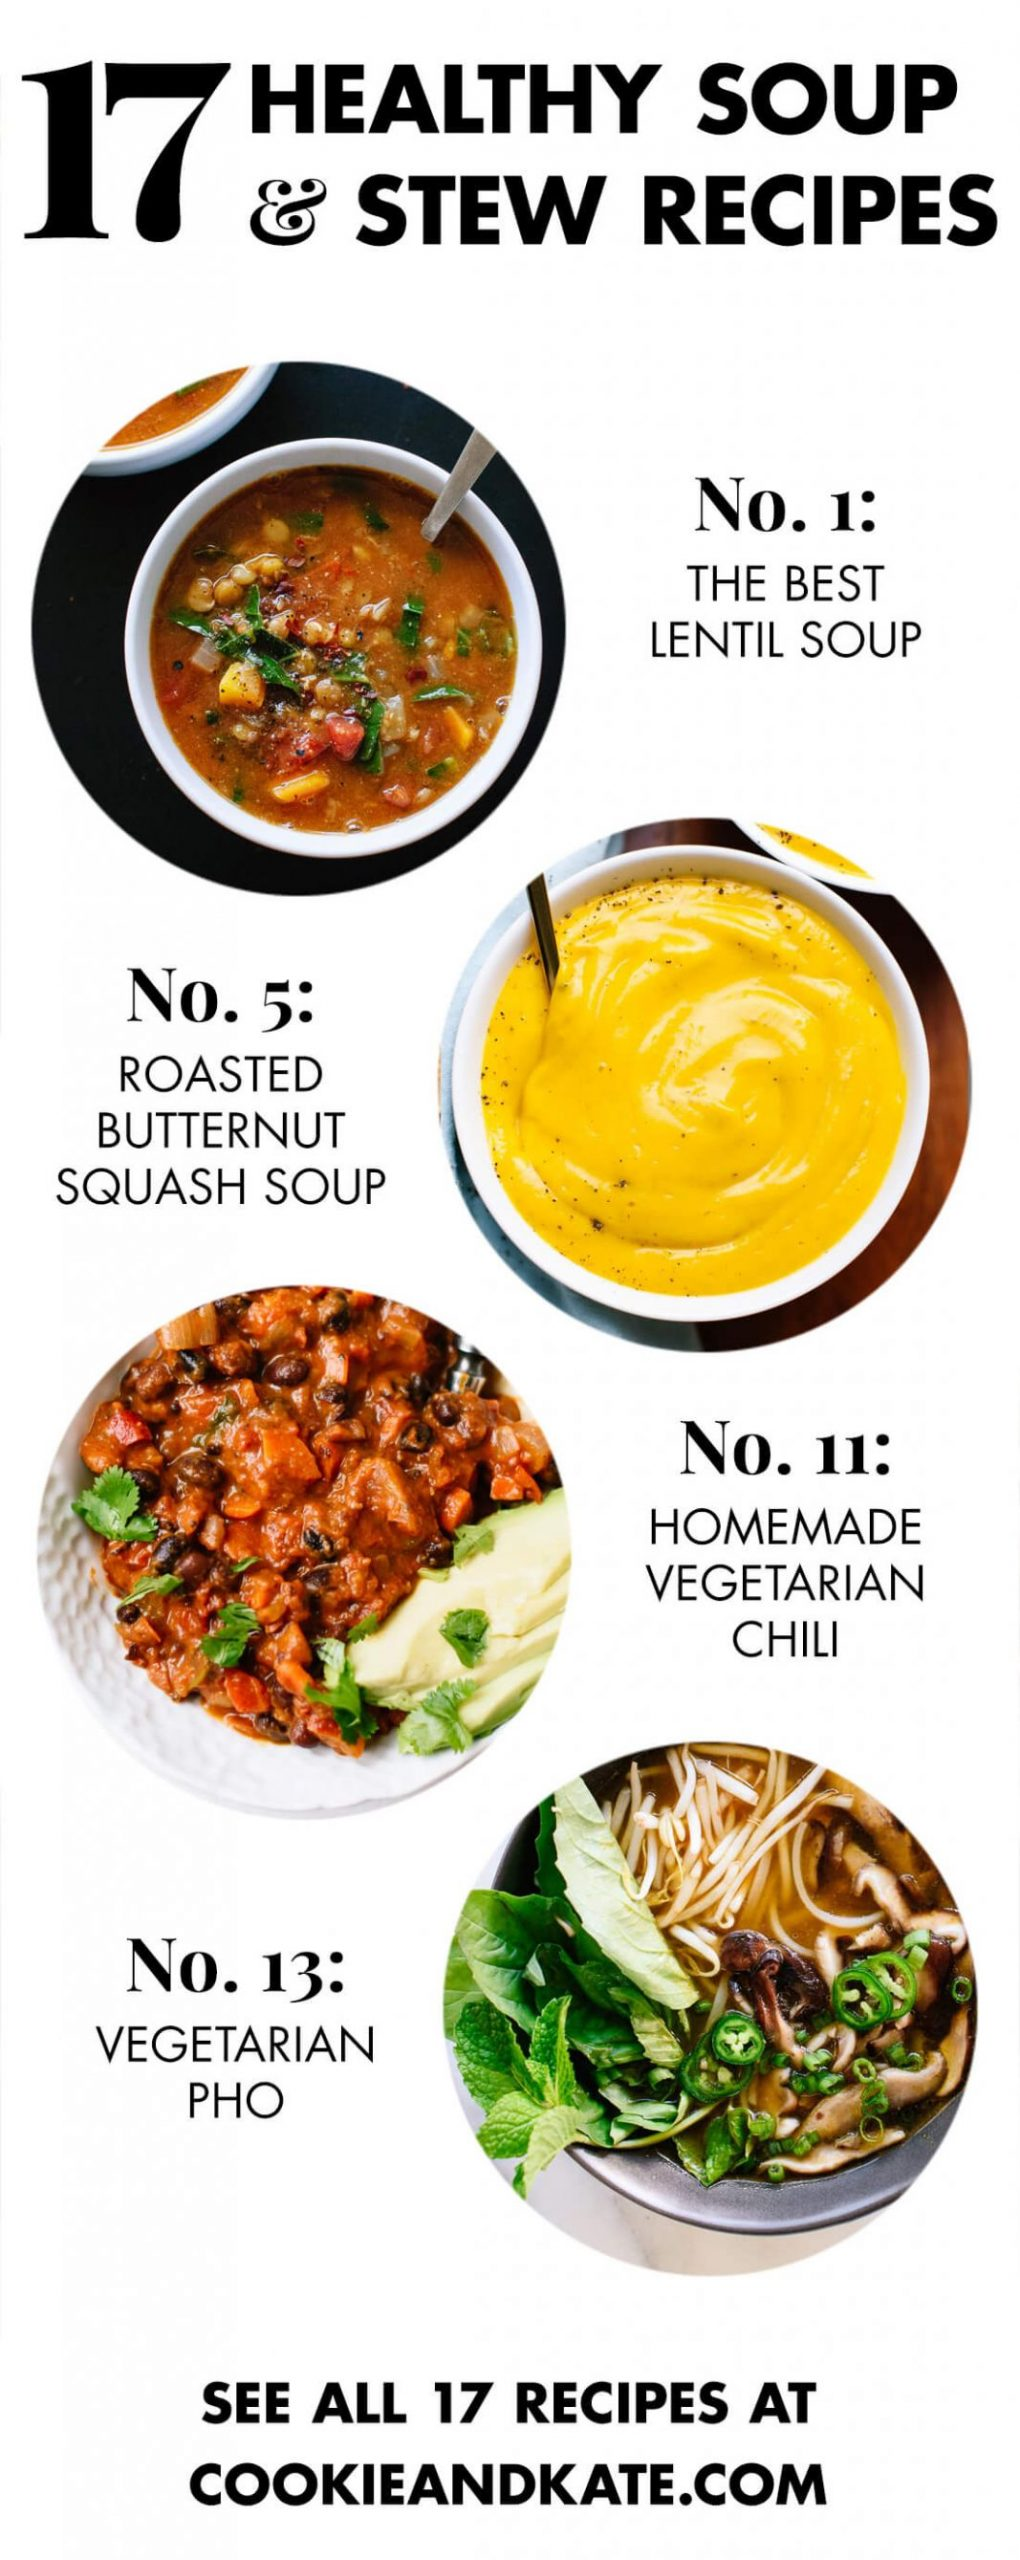 9 Healthy Vegetarian Soup Recipes - Cookie and Kate - Soup Recipes Healthy Vegetarian